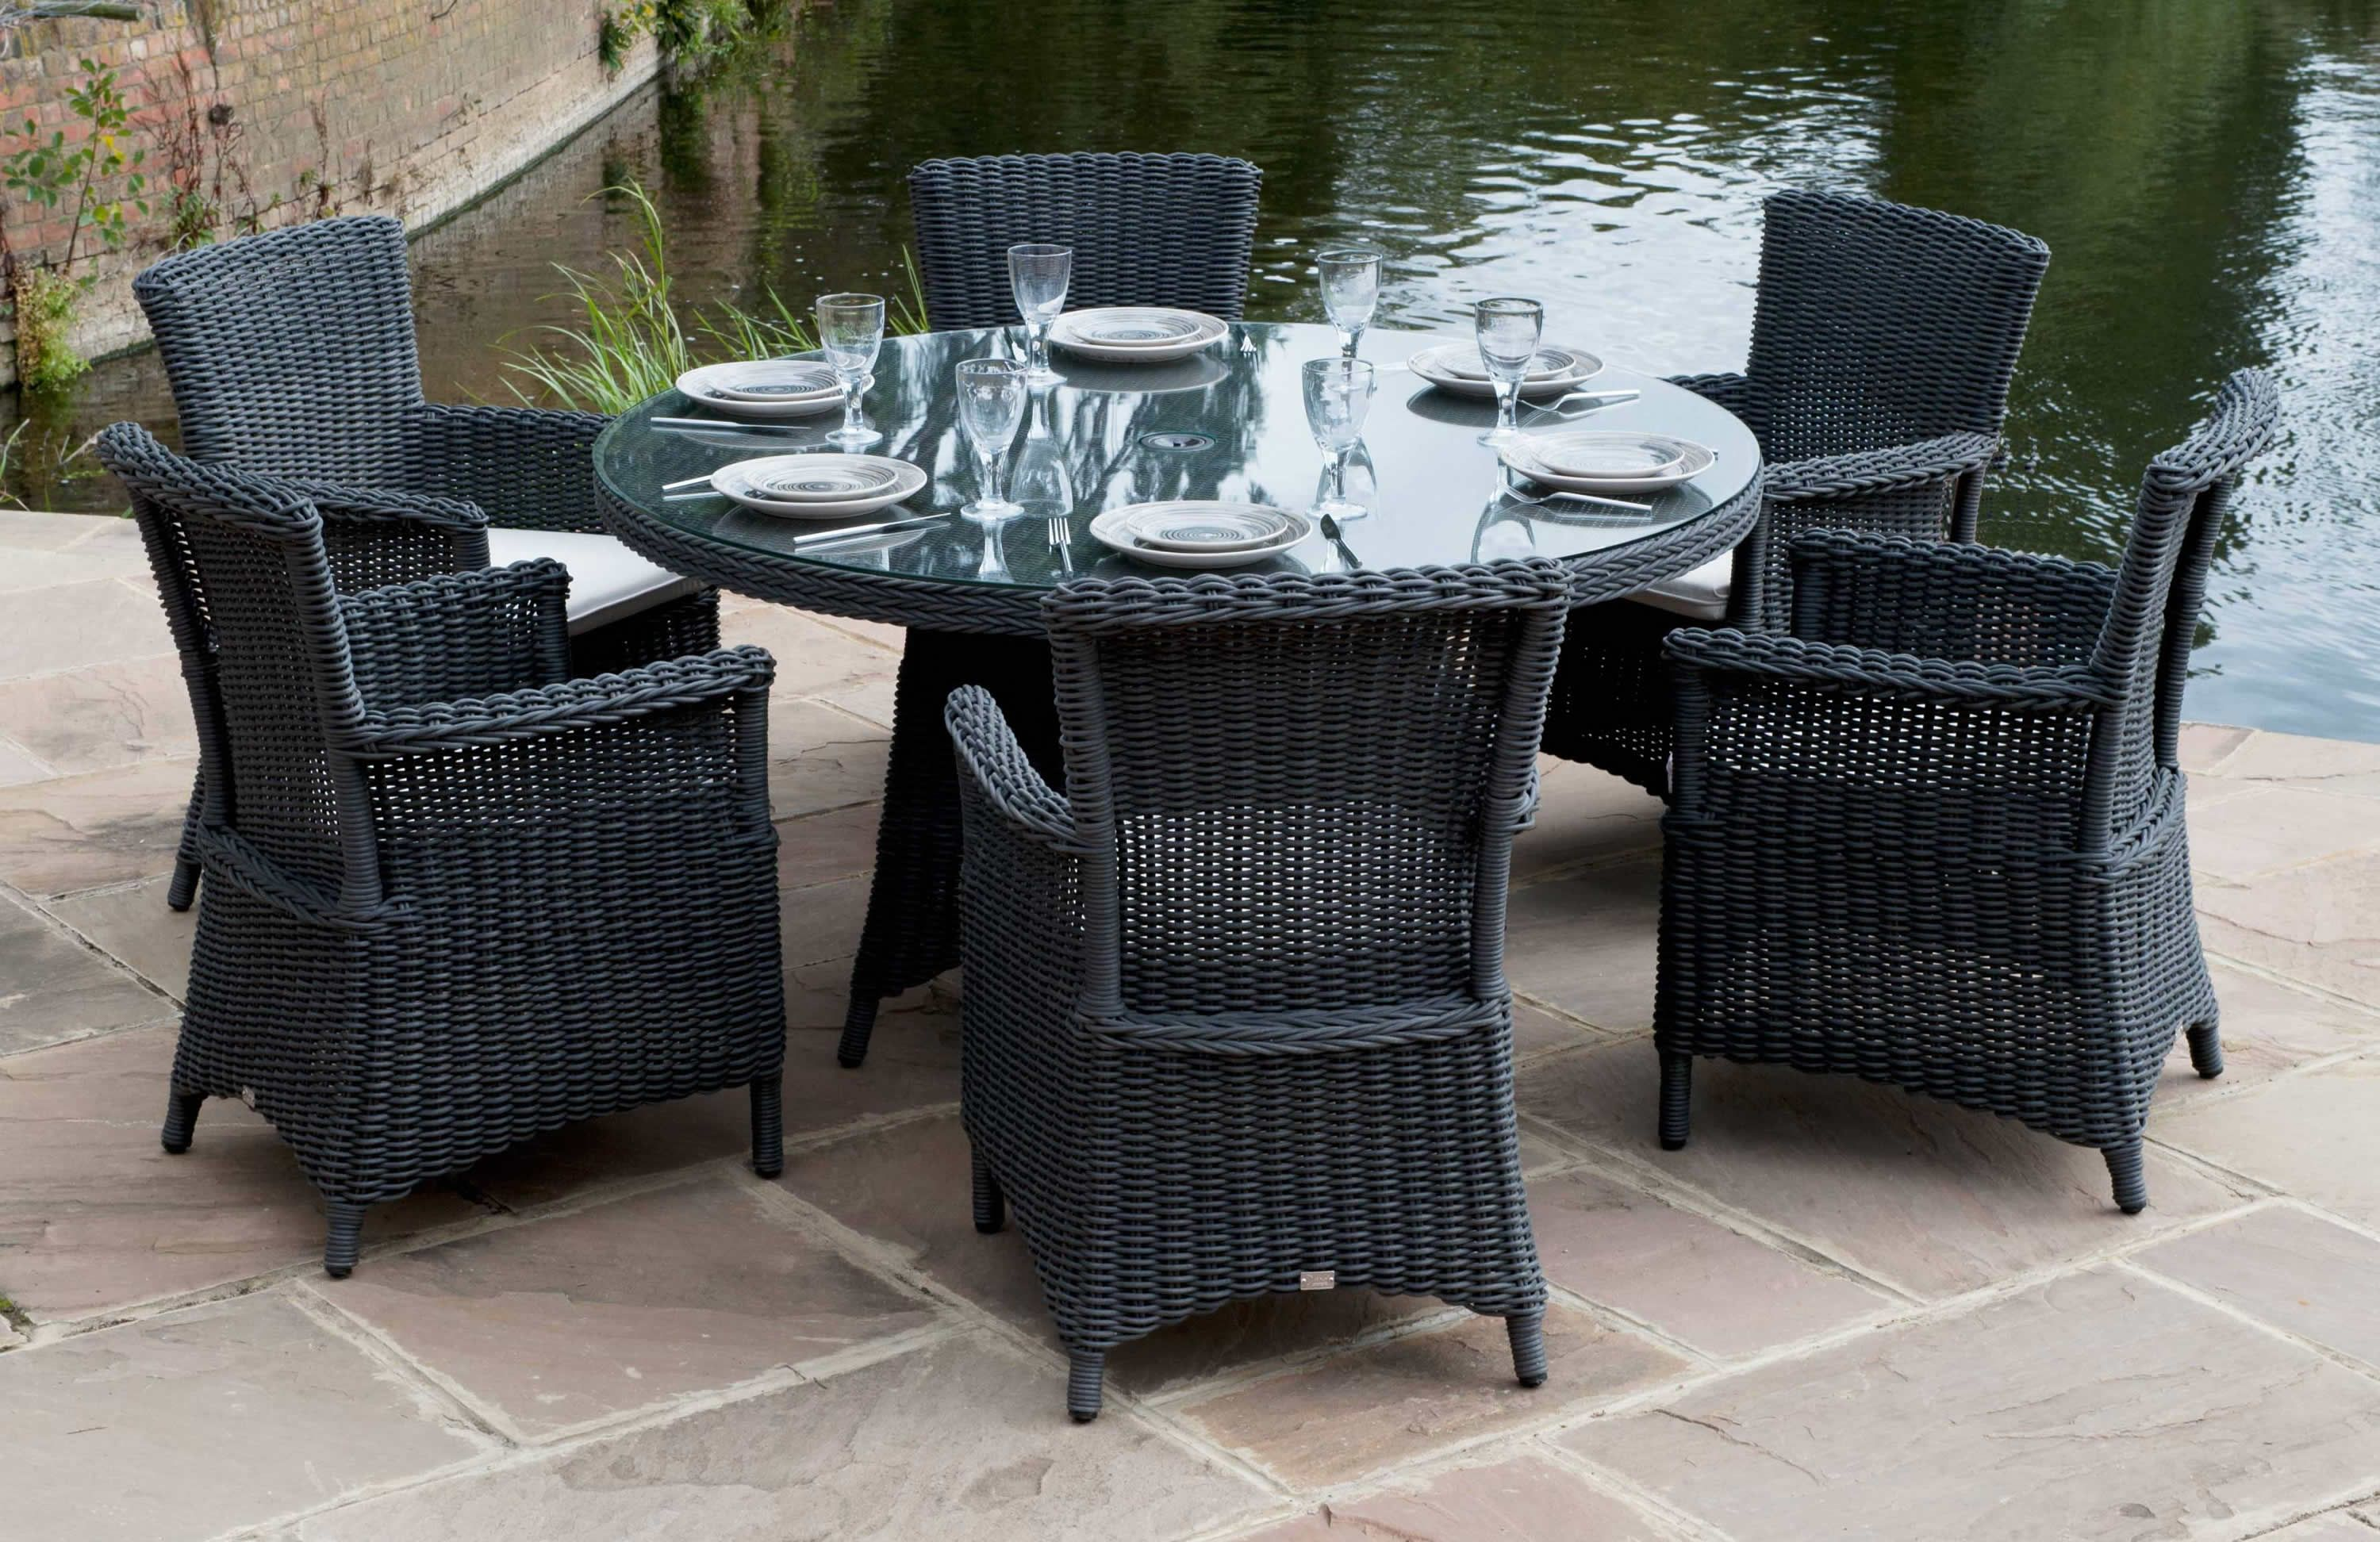 Wicker Patio Dining Furniture. Daro Cane For Furniture, Rattan Wicker  Outdoor Furniture And Conservatory